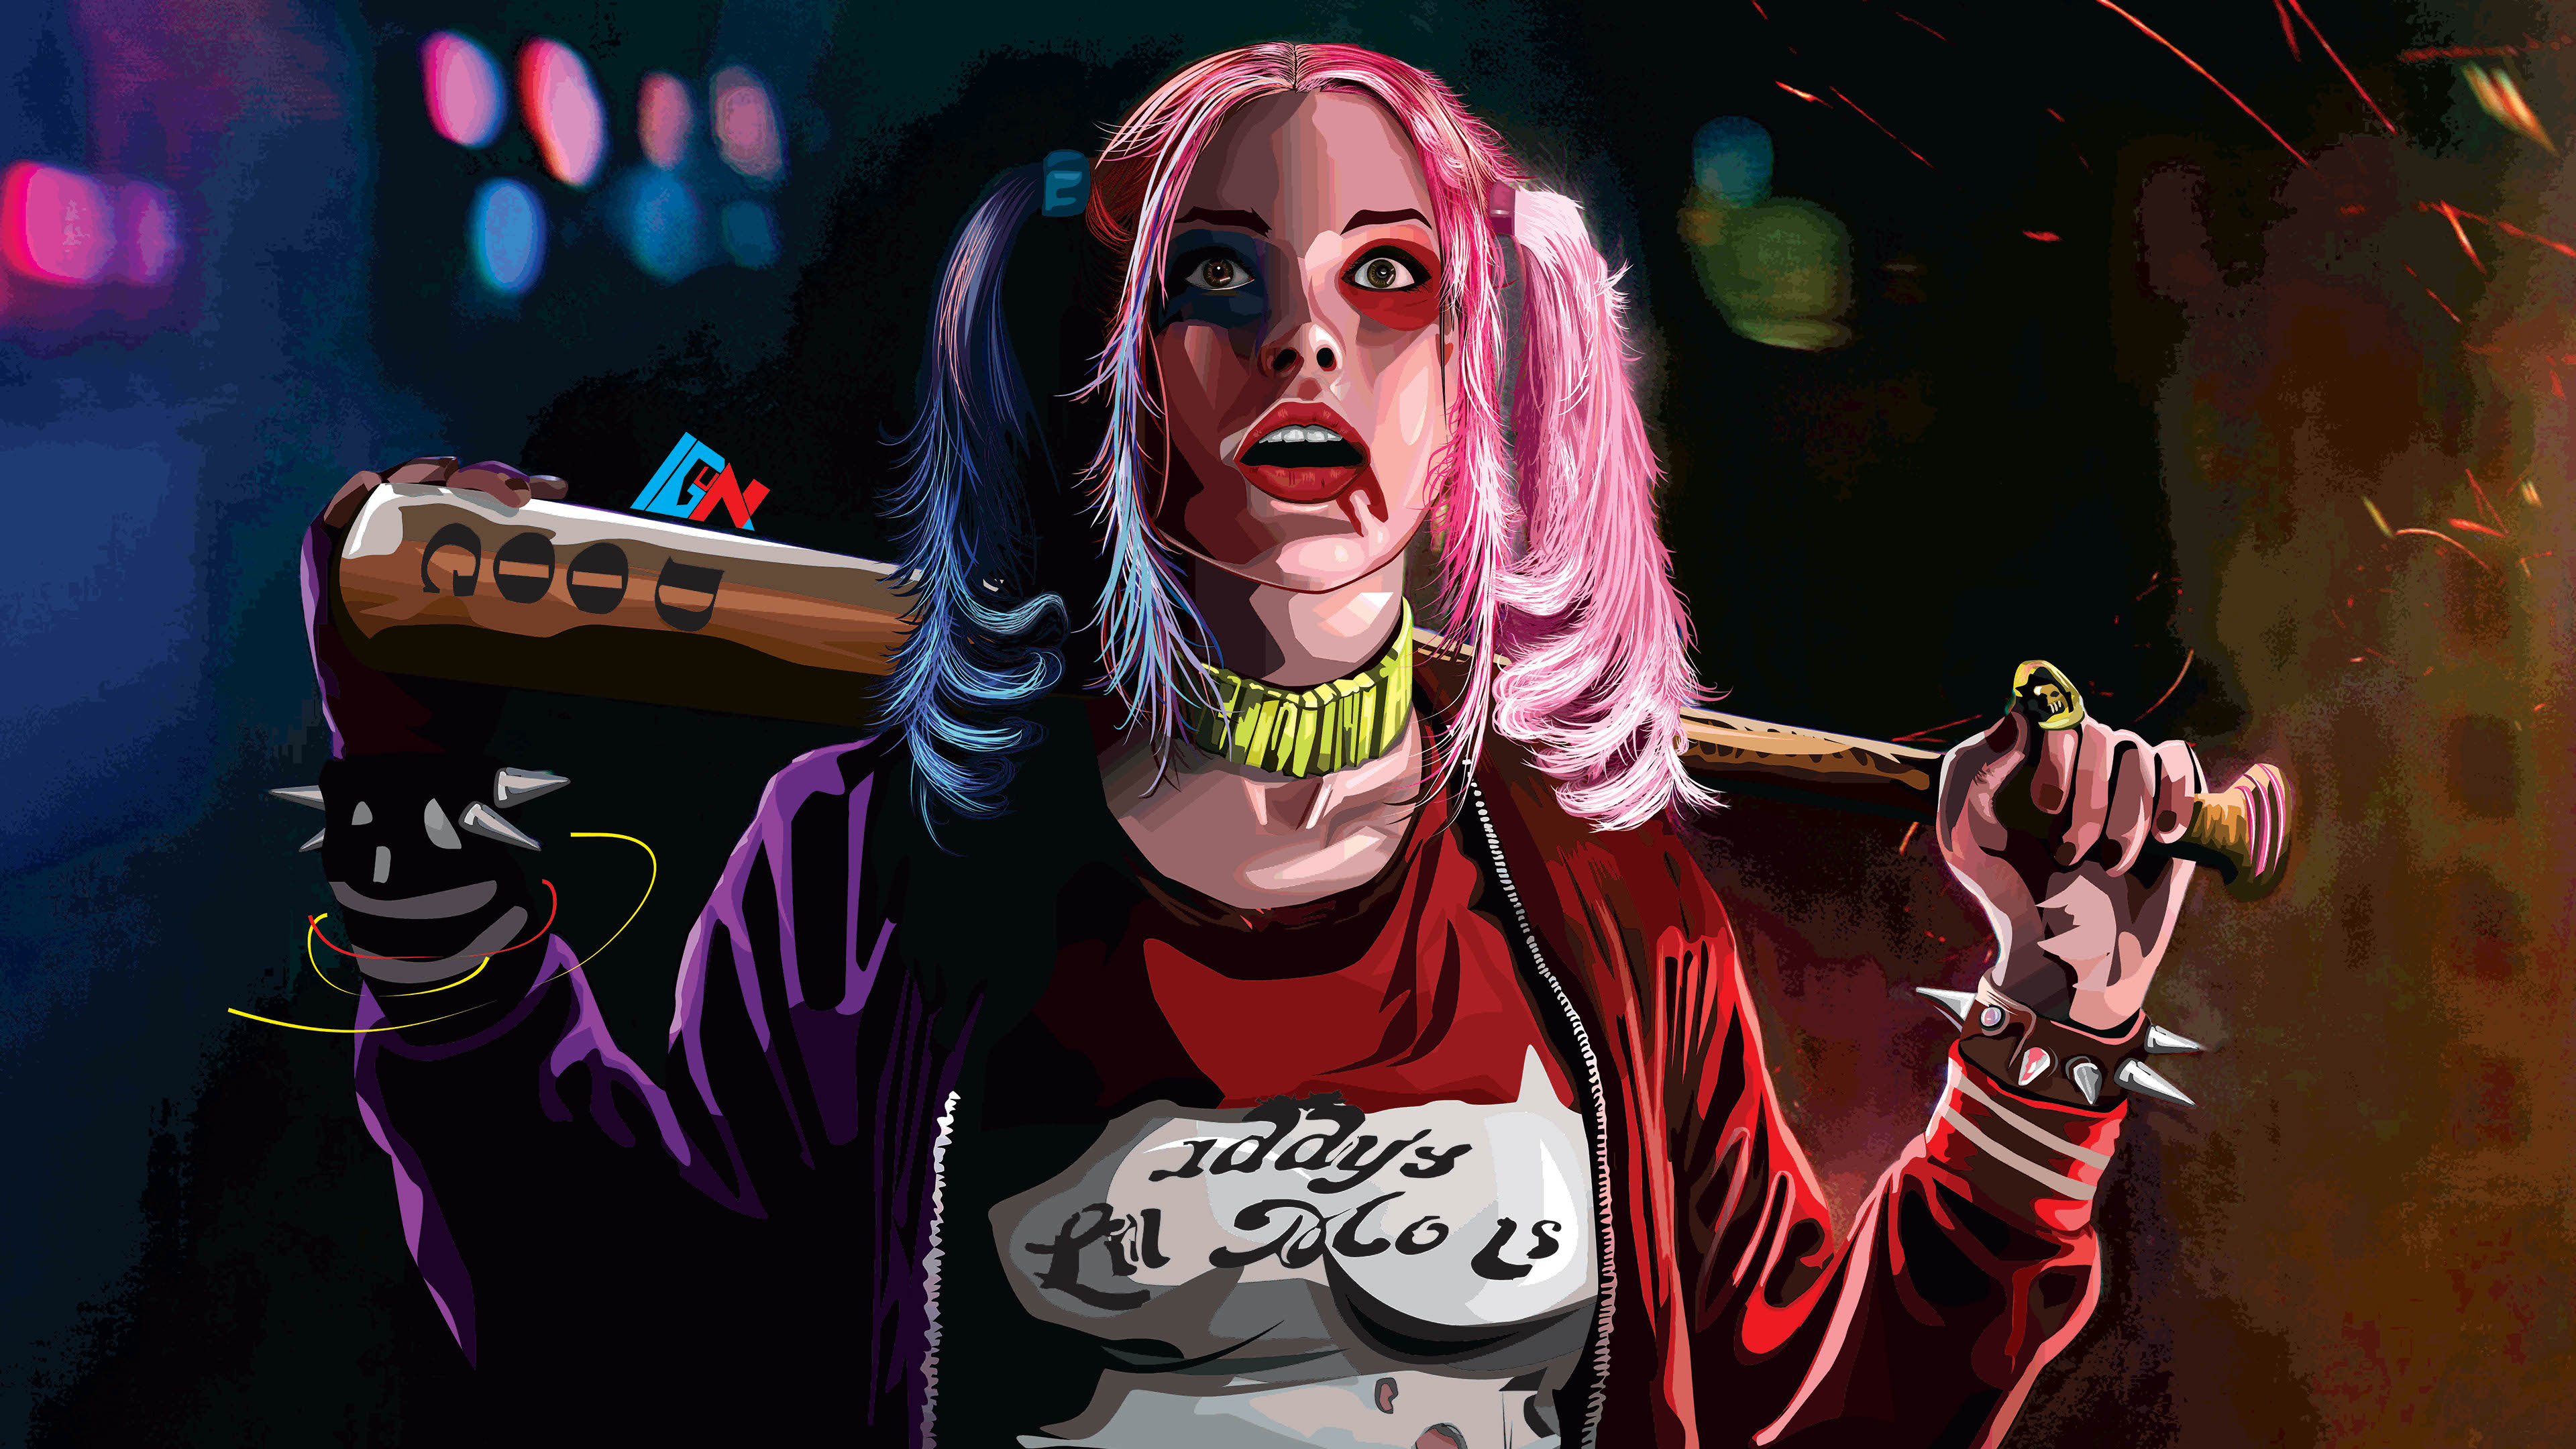 Harley quinn 4k artworks hd superheroes 4k wallpapers - Harley quinn hd wallpapers for android ...